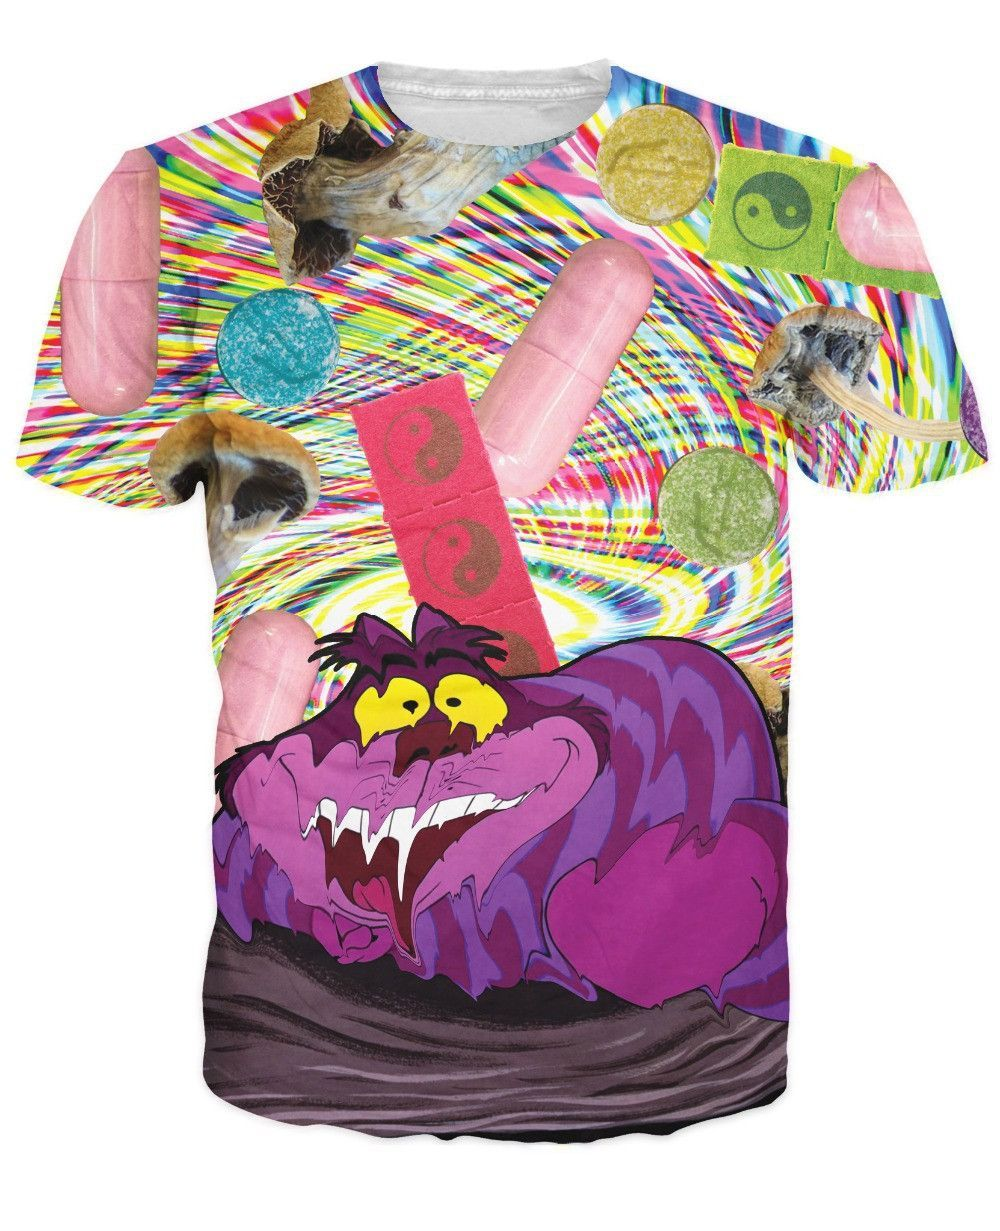 Psychedelic Cheshire Cat T Shirt Trippy Psychedelic Drugs in